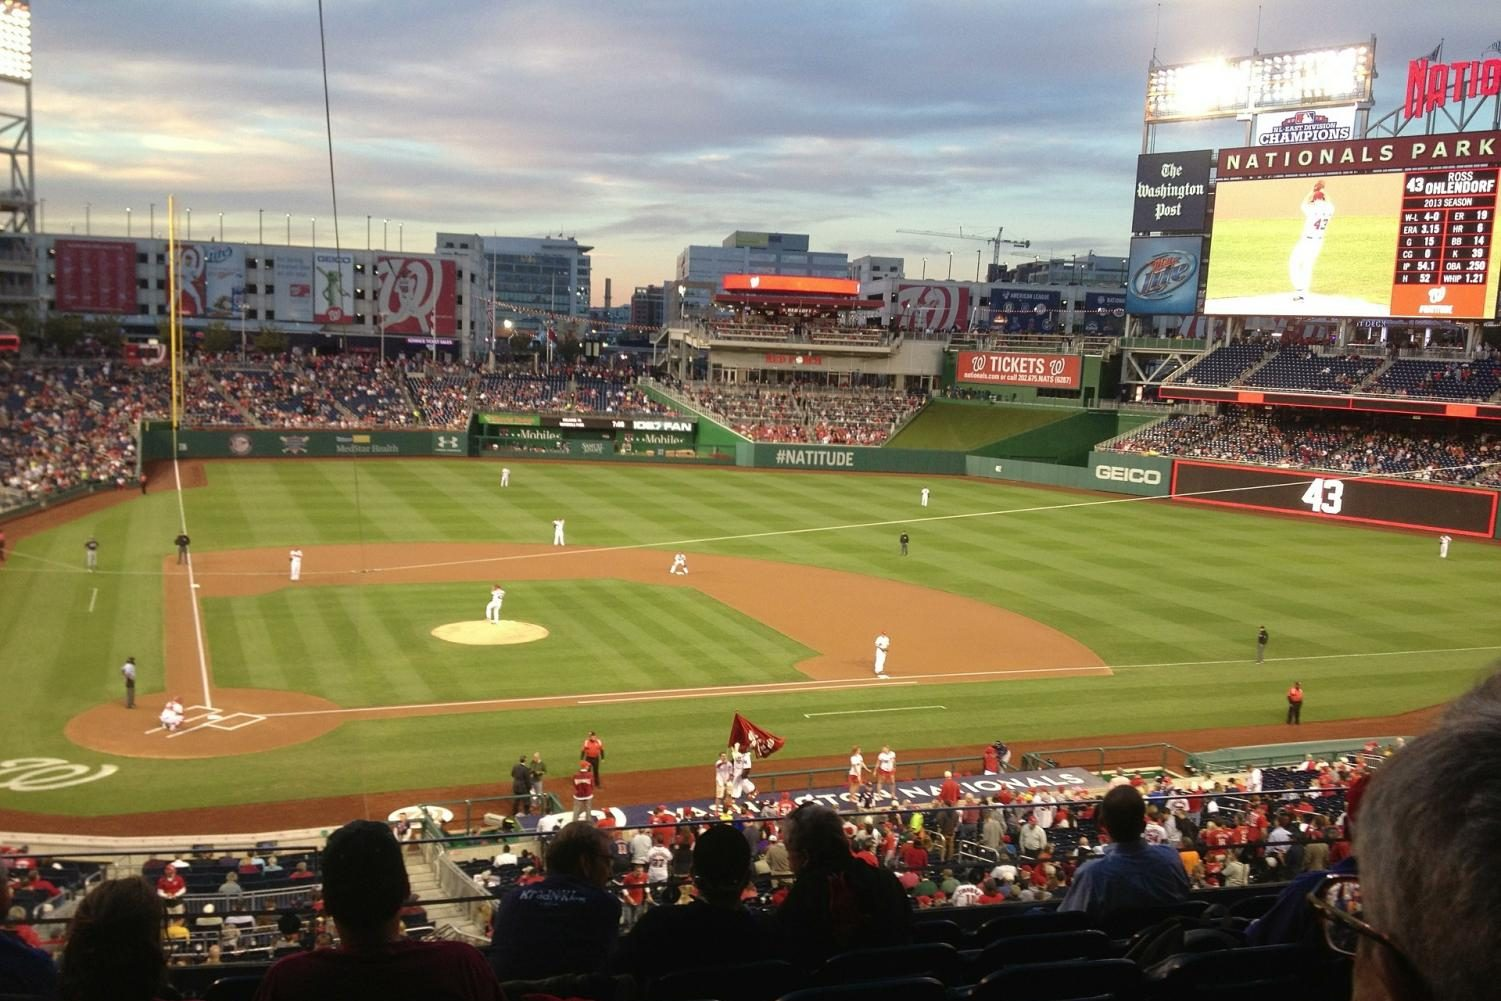 Nationals Stadium during the 2019 National League Game